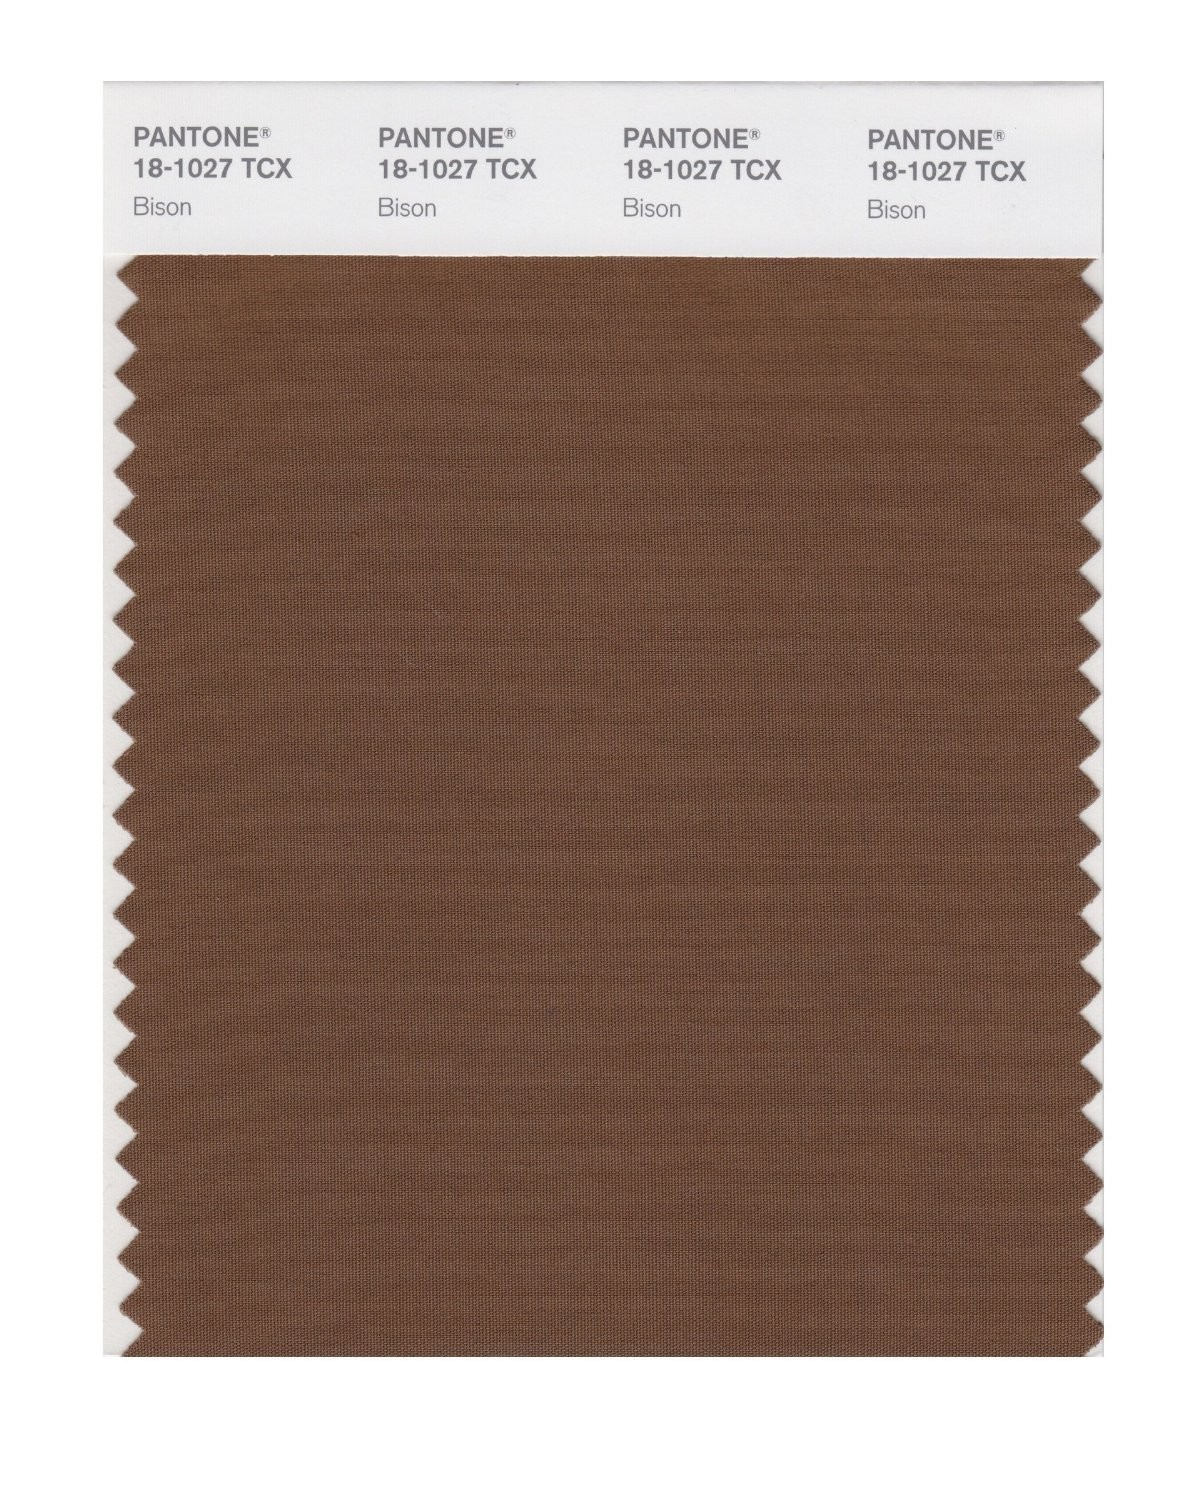 Pantone 18-1027 TCX Swatch Card Bison